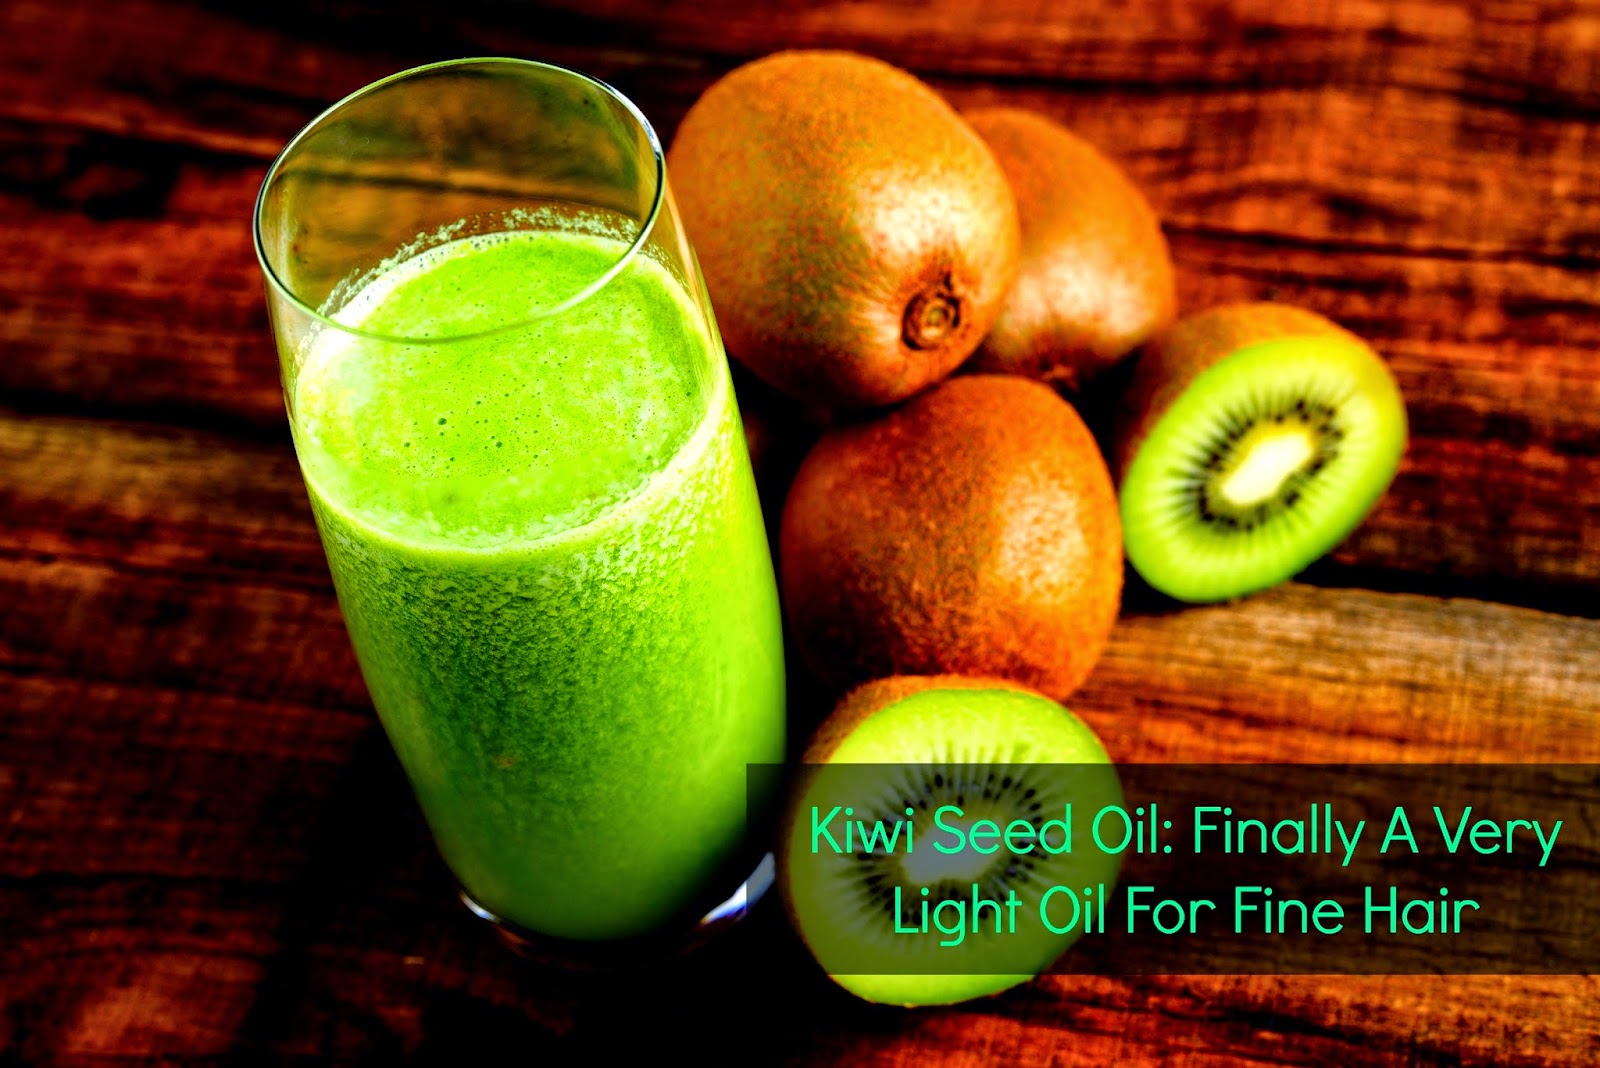 Kiwi Seed Oil: Finally A Very Light Oil For Fine Hair